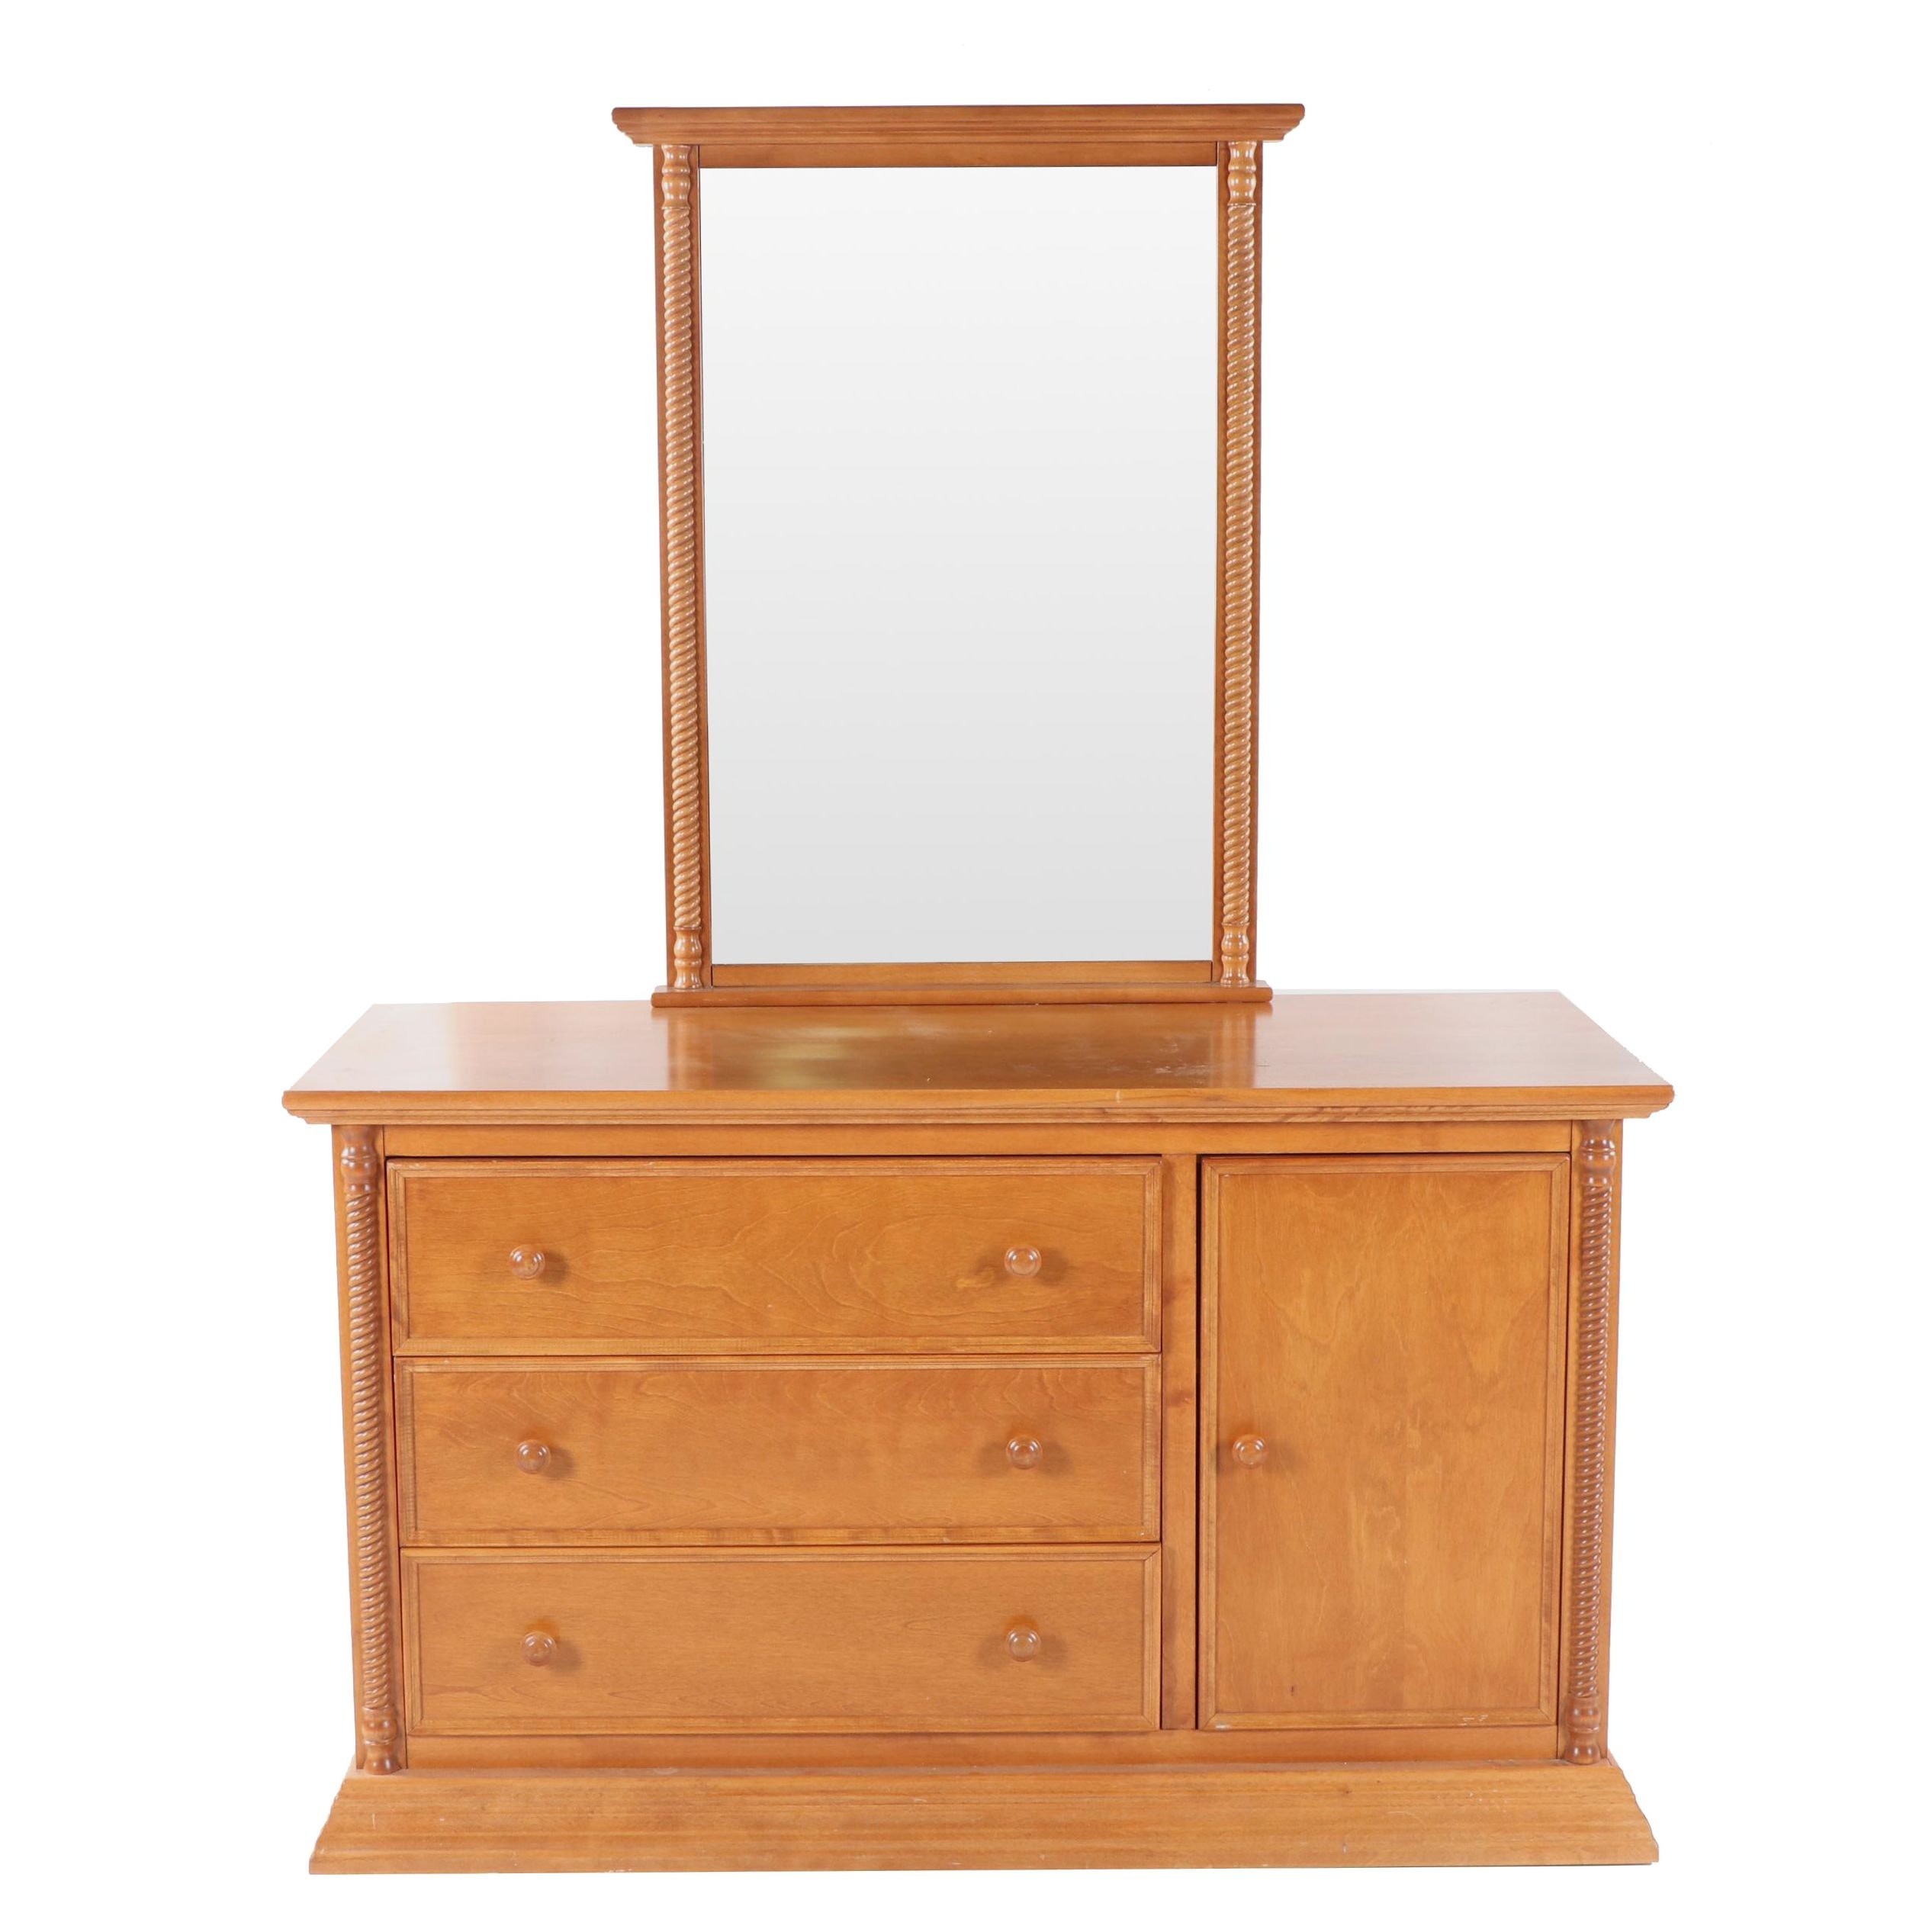 Federal Style Maple Dresser and Mirror by Bellini, 21st Century